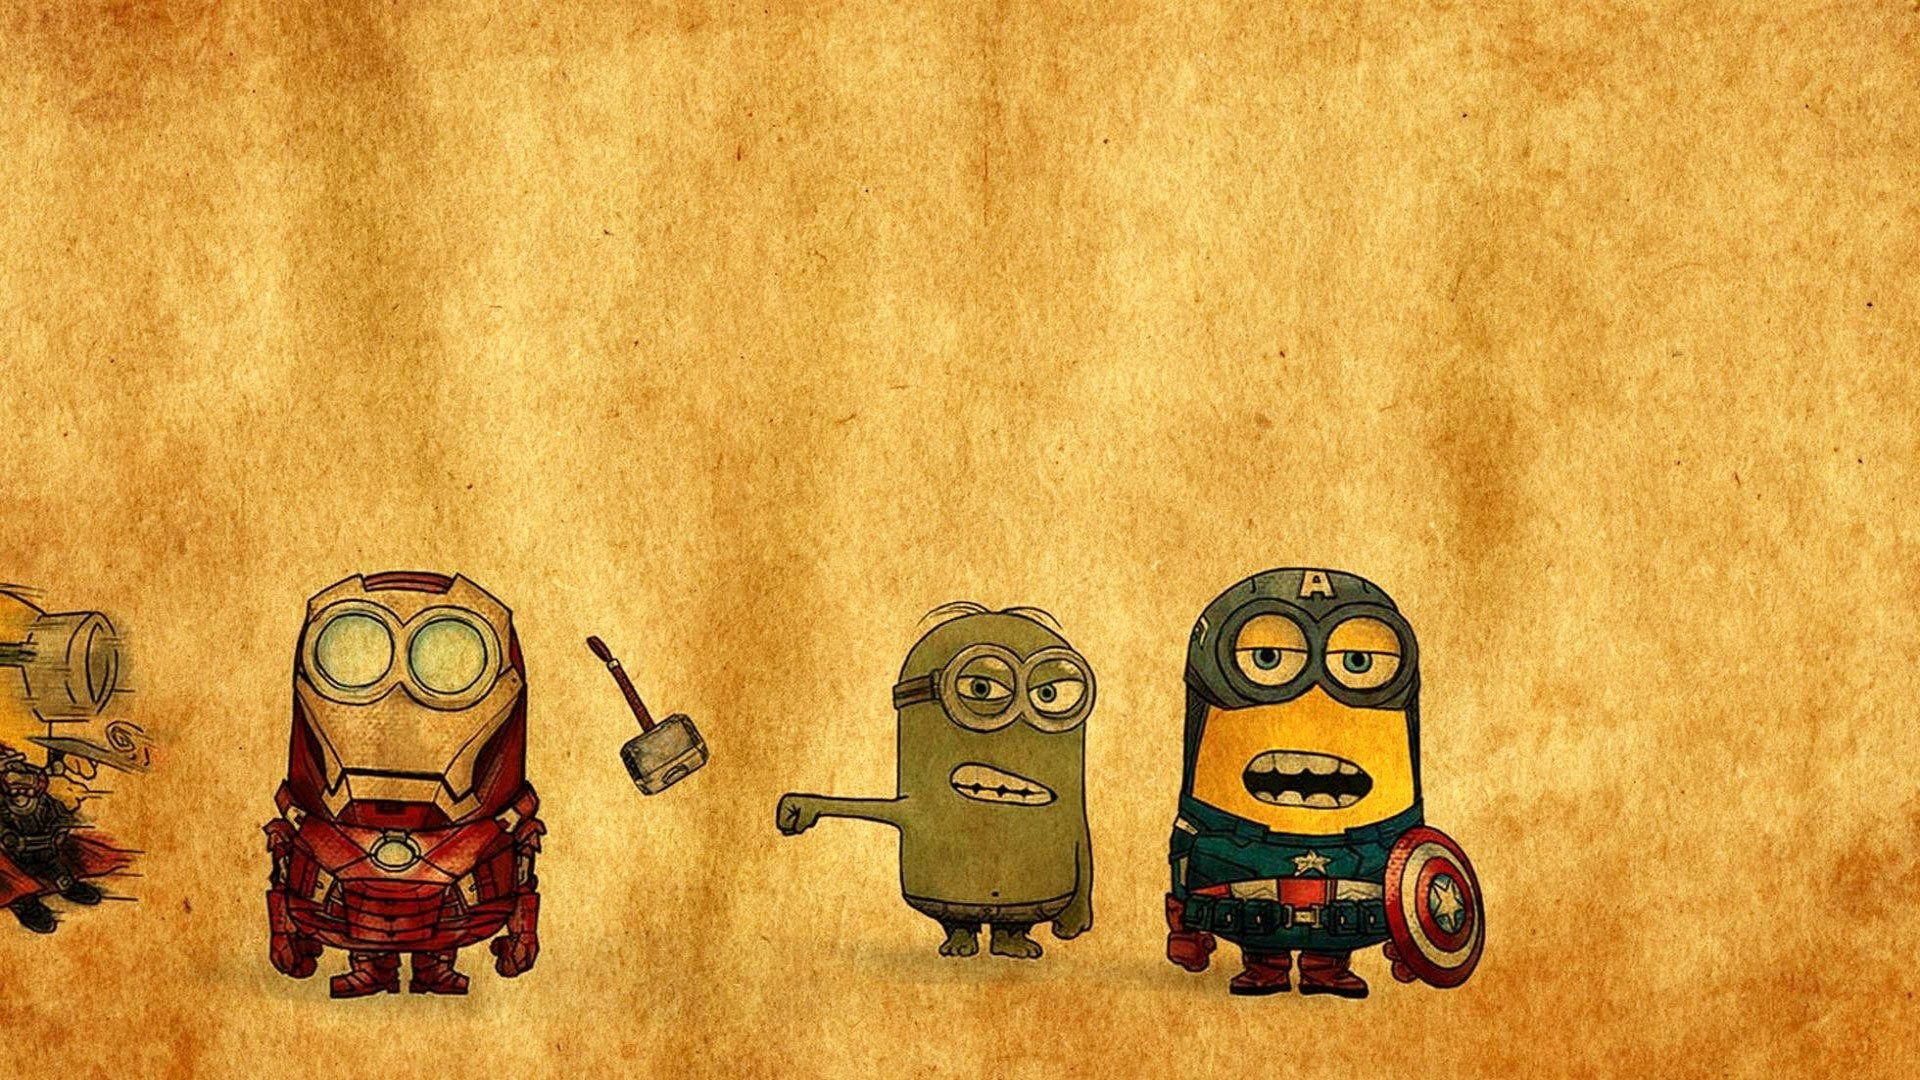 1920x1080 Minions-Avengers-Drawing-HD-Wallpapers